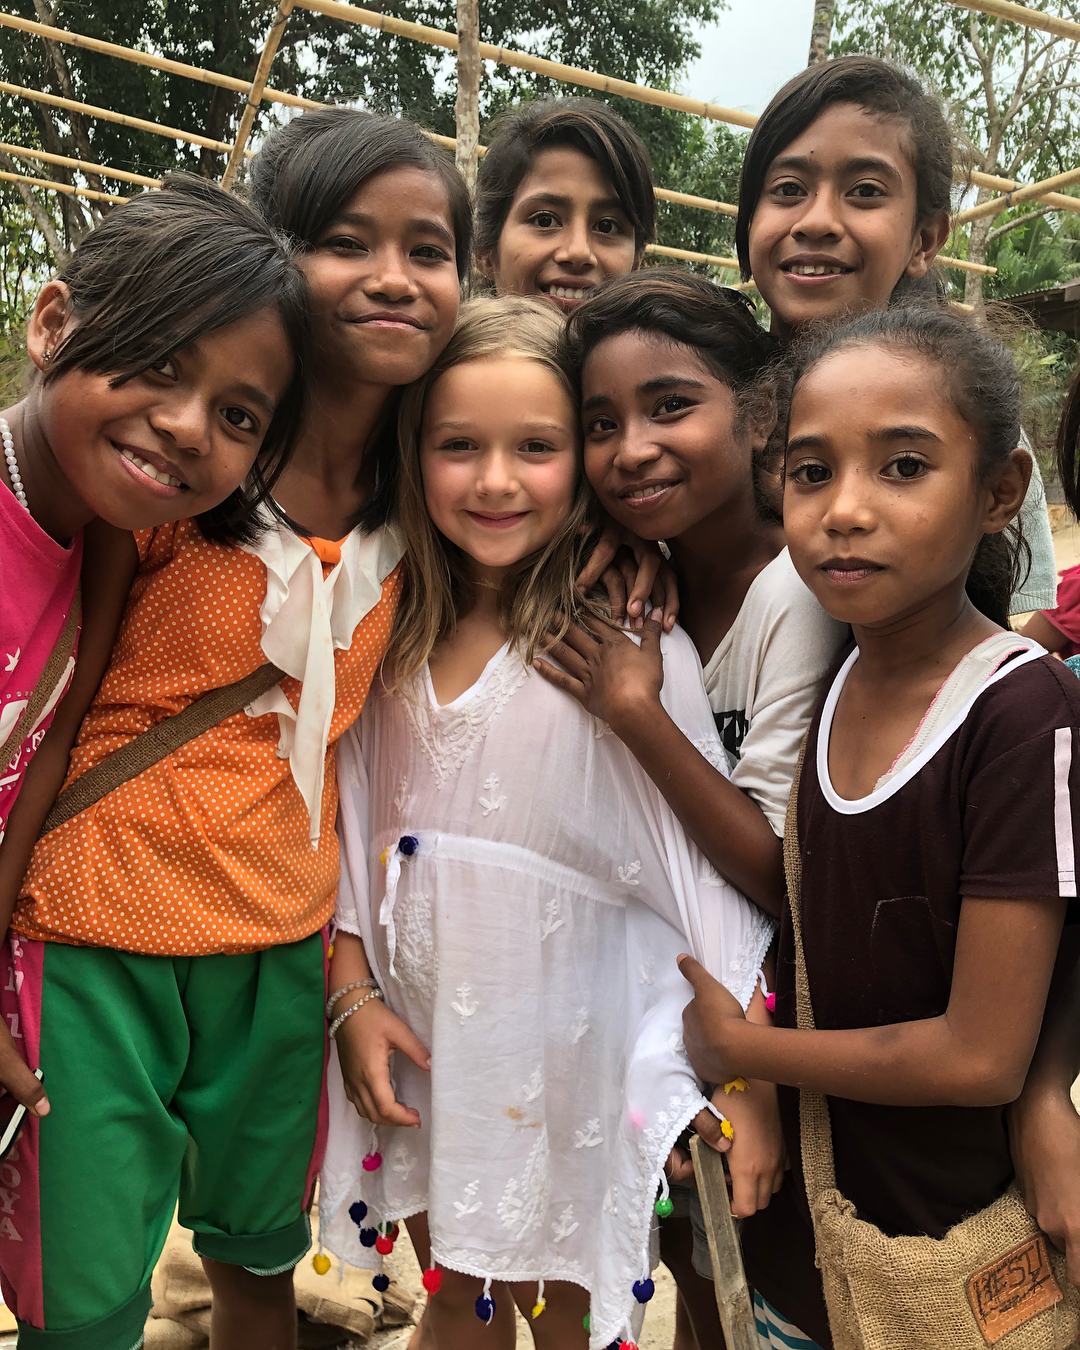 Victoria-Beckham-Takes-Kids-Harper-Romeo-Cruz-and-Brooklyn-To-School-In-Sumba-For-Inspirational-Day